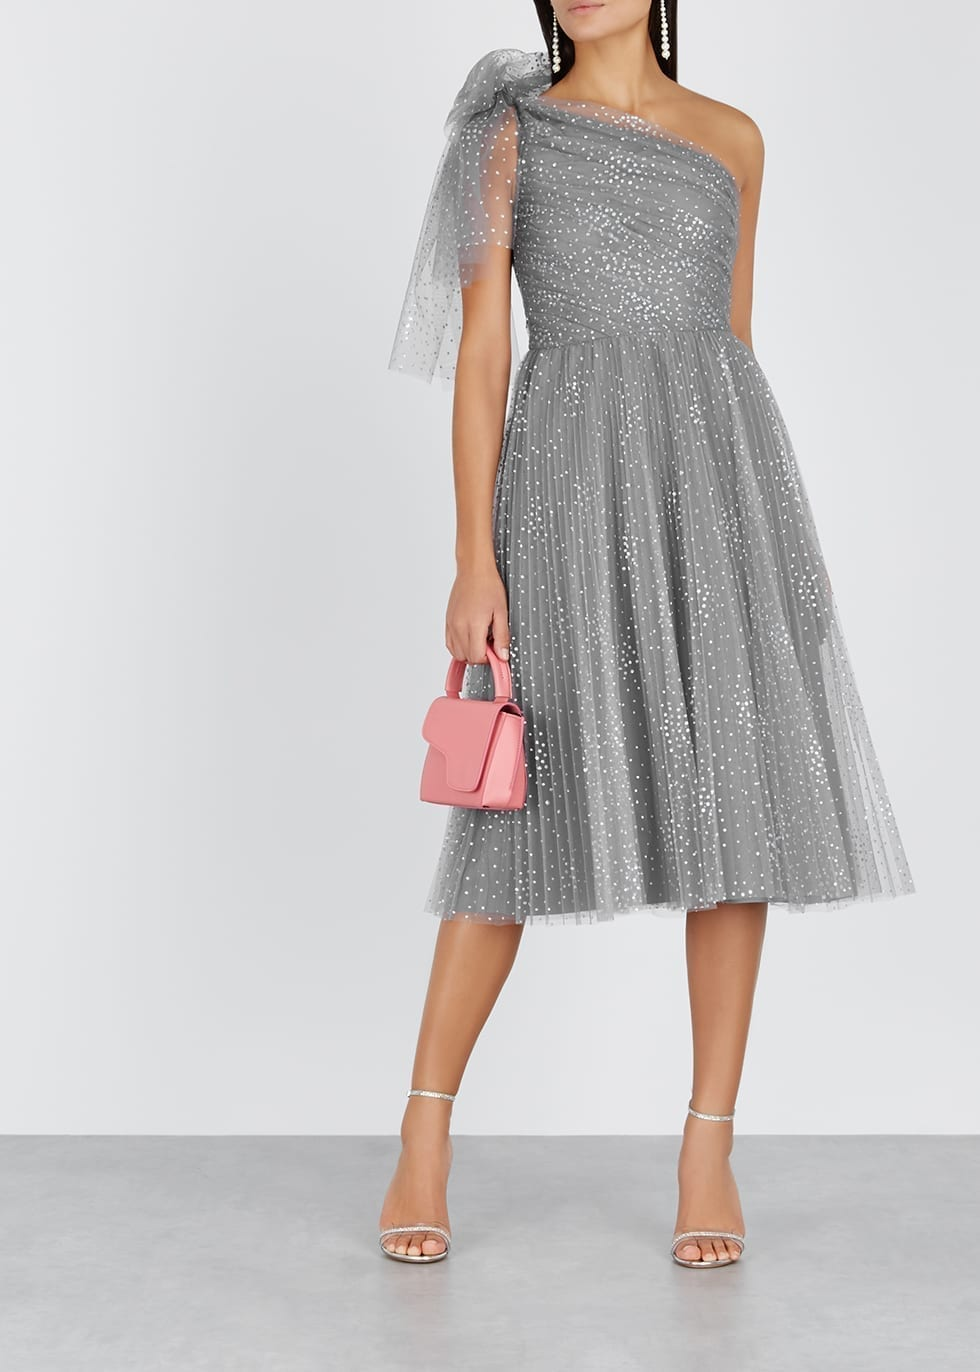 f961ccc03c RED VALENTINO Glittered Polka-dot Tulle Grey Dress - We Select Dresses